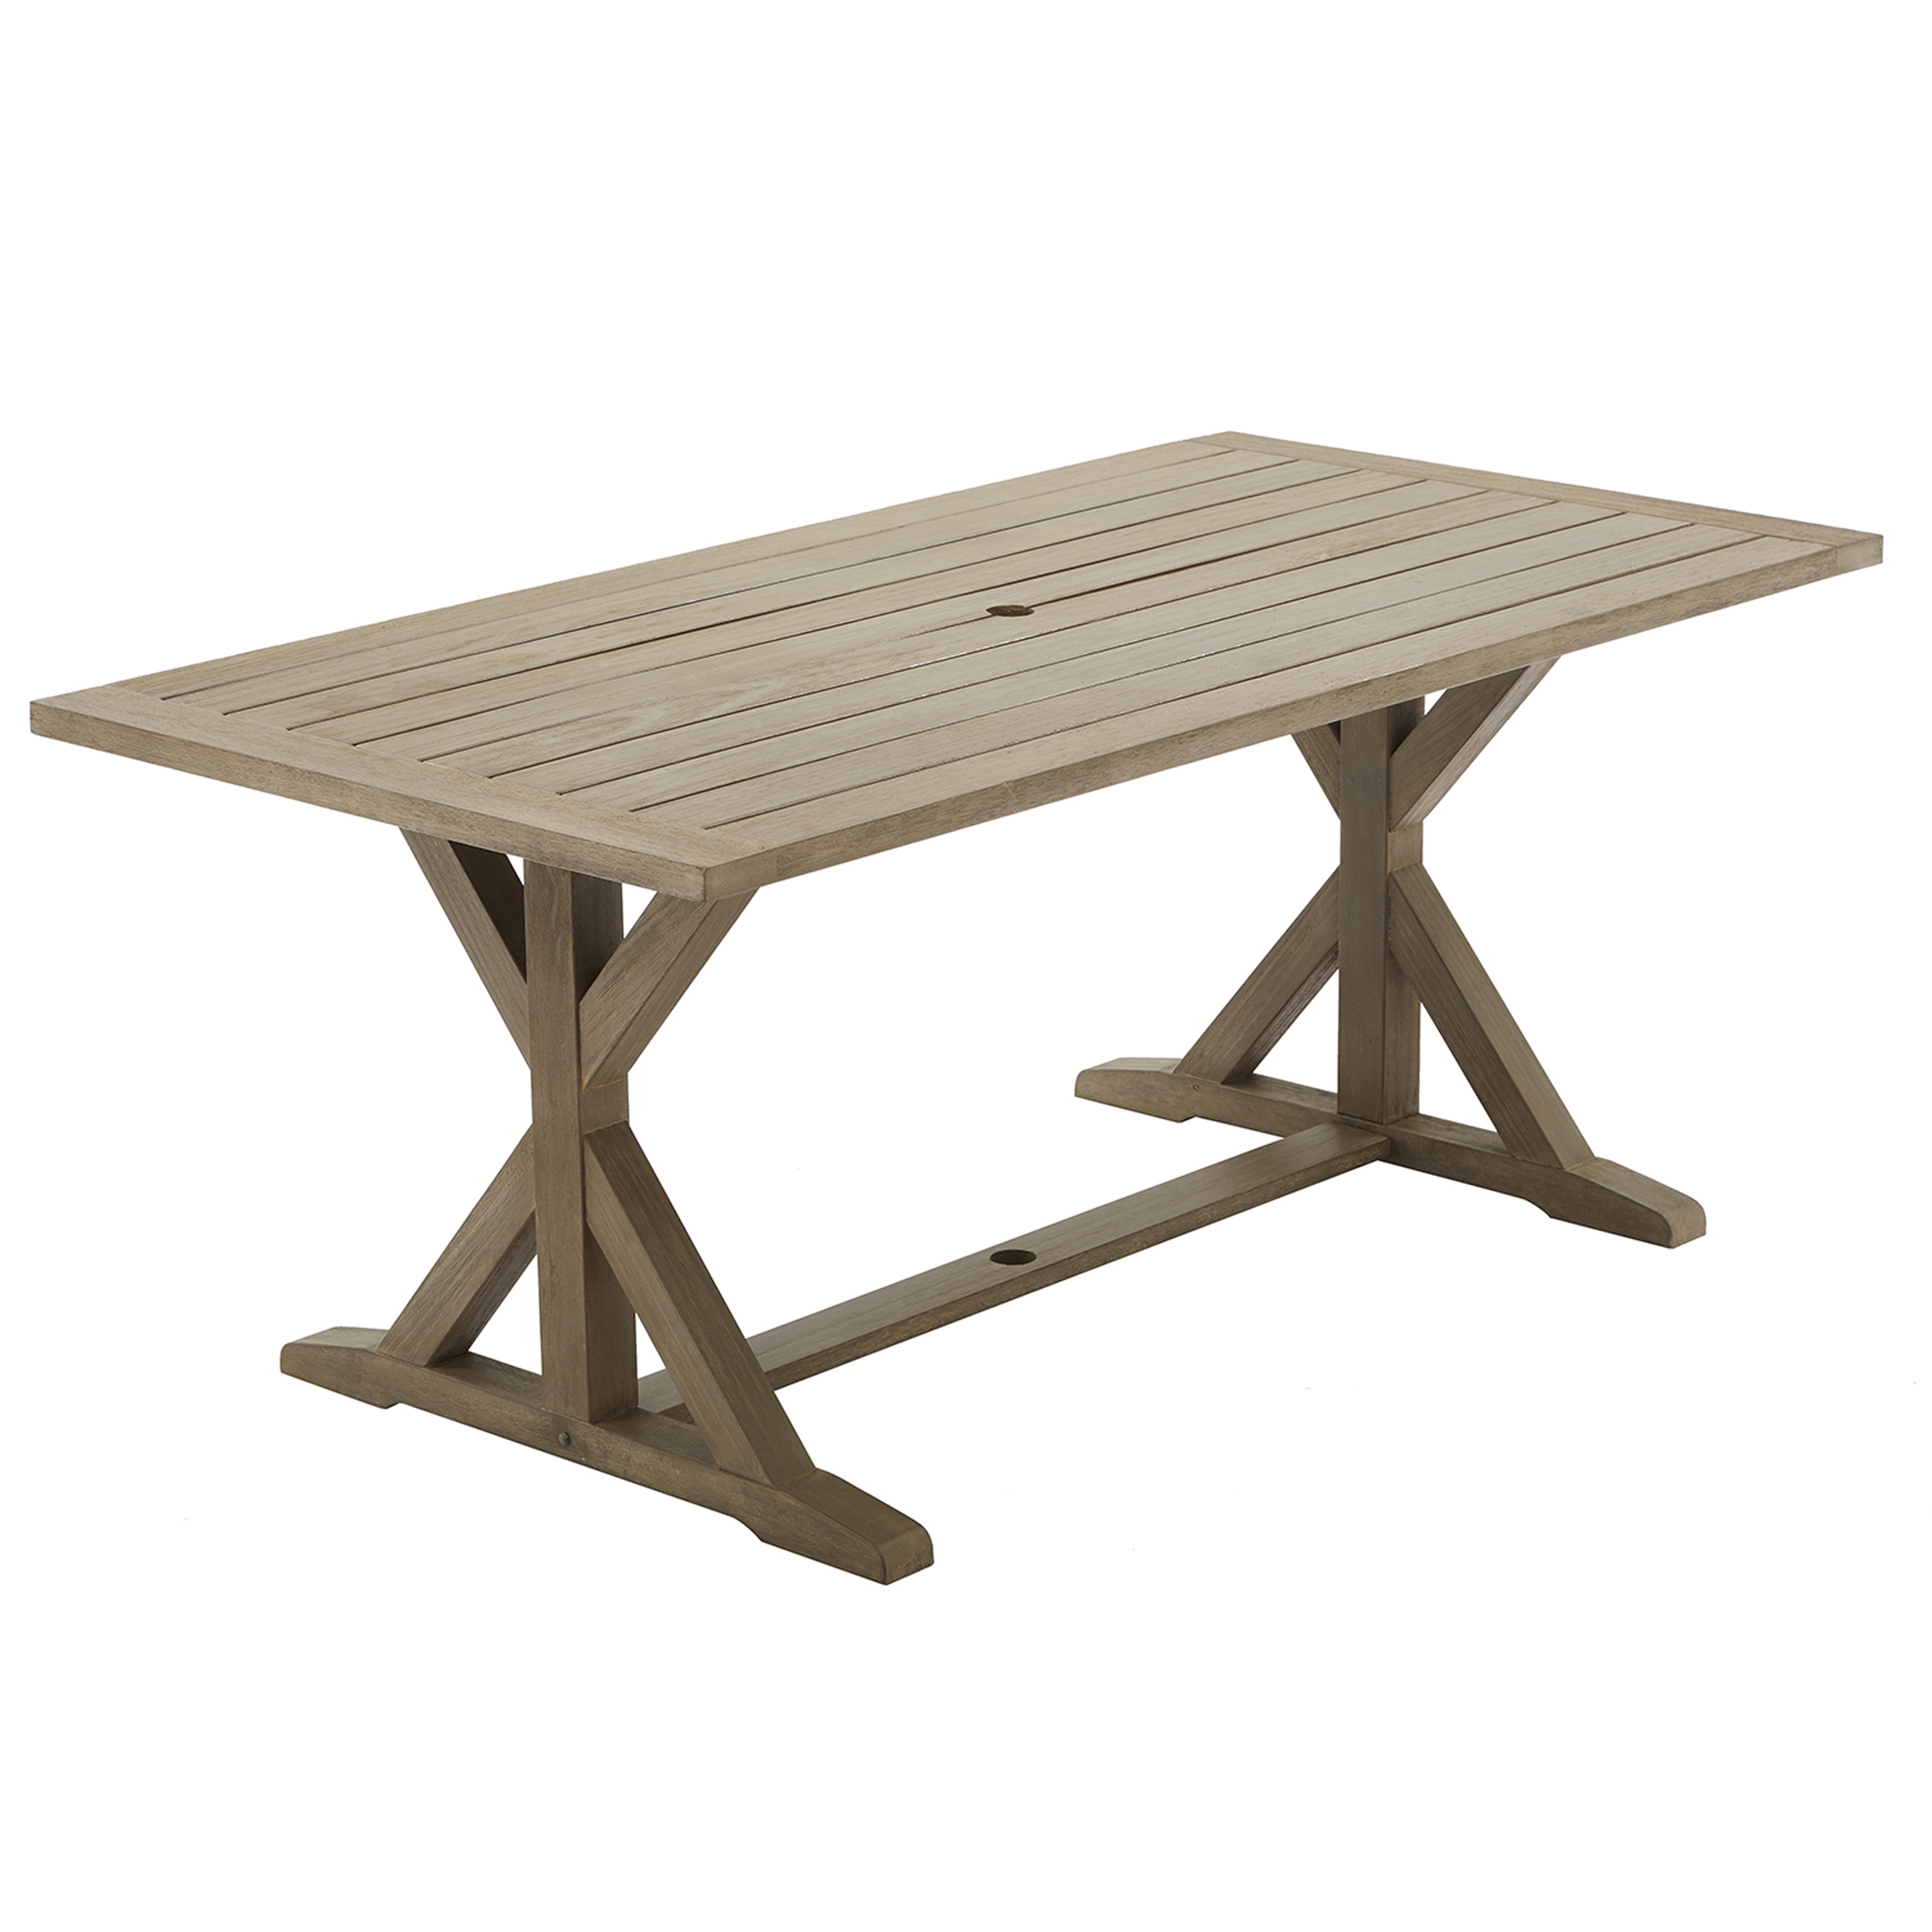 Better Homes And Gardens Camrose Farmhouse Trestle Based Outdoor Dining  Table